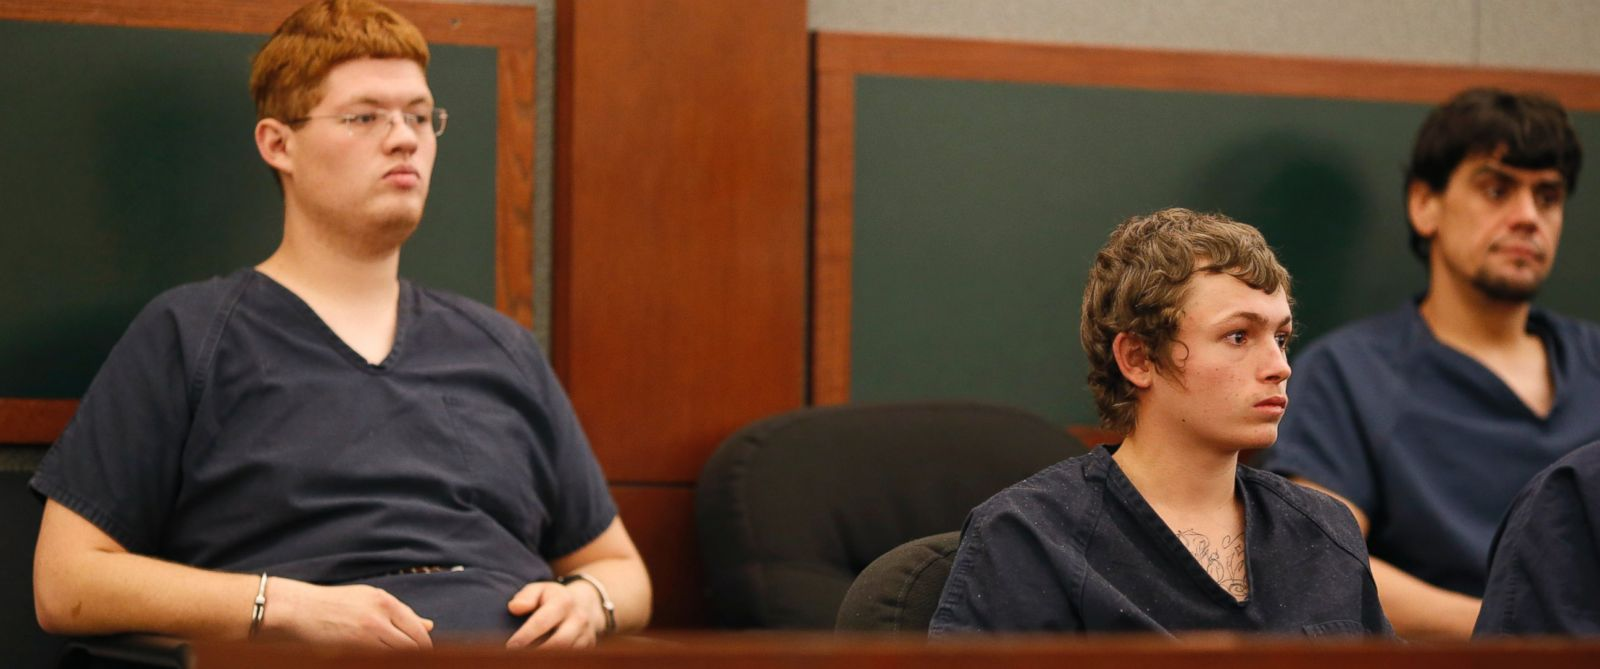 PHOTO: Erich Milton Nowsch Jr., second from right, and Derrick Andrews, left, appear in court, March 31, 2015, in Las Vegas. The two have been charged with the Feb. 12, 2014, fatal shooting of Tammy Meyers, 44, in a Las Vegas neighborhood cul-de-sac.